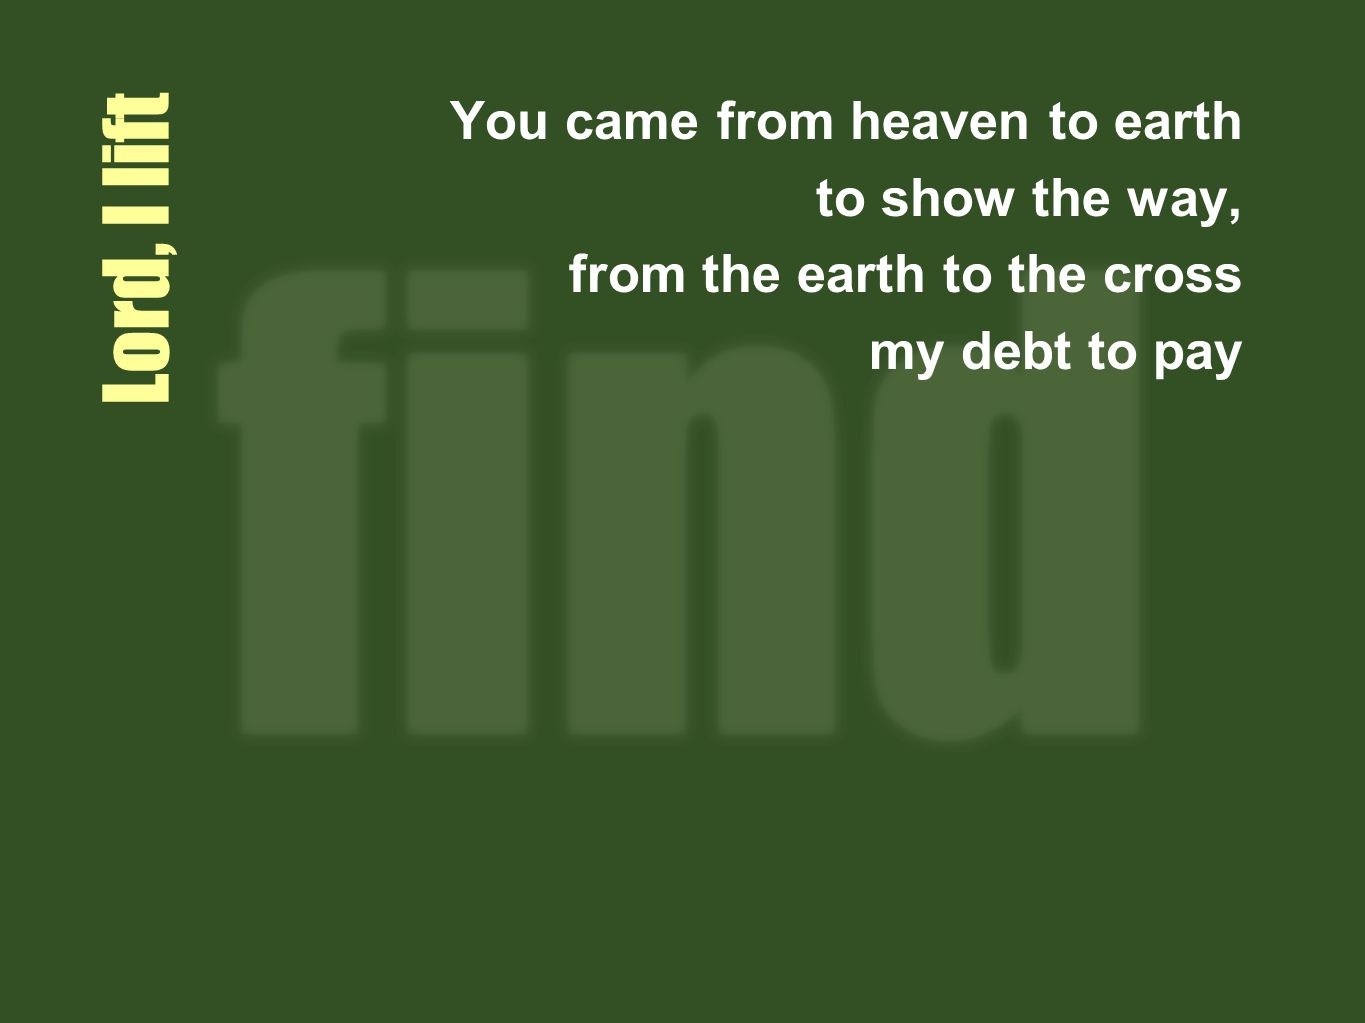 You came from heaven to earth to show the way, from the earth to the cross my debt to pay